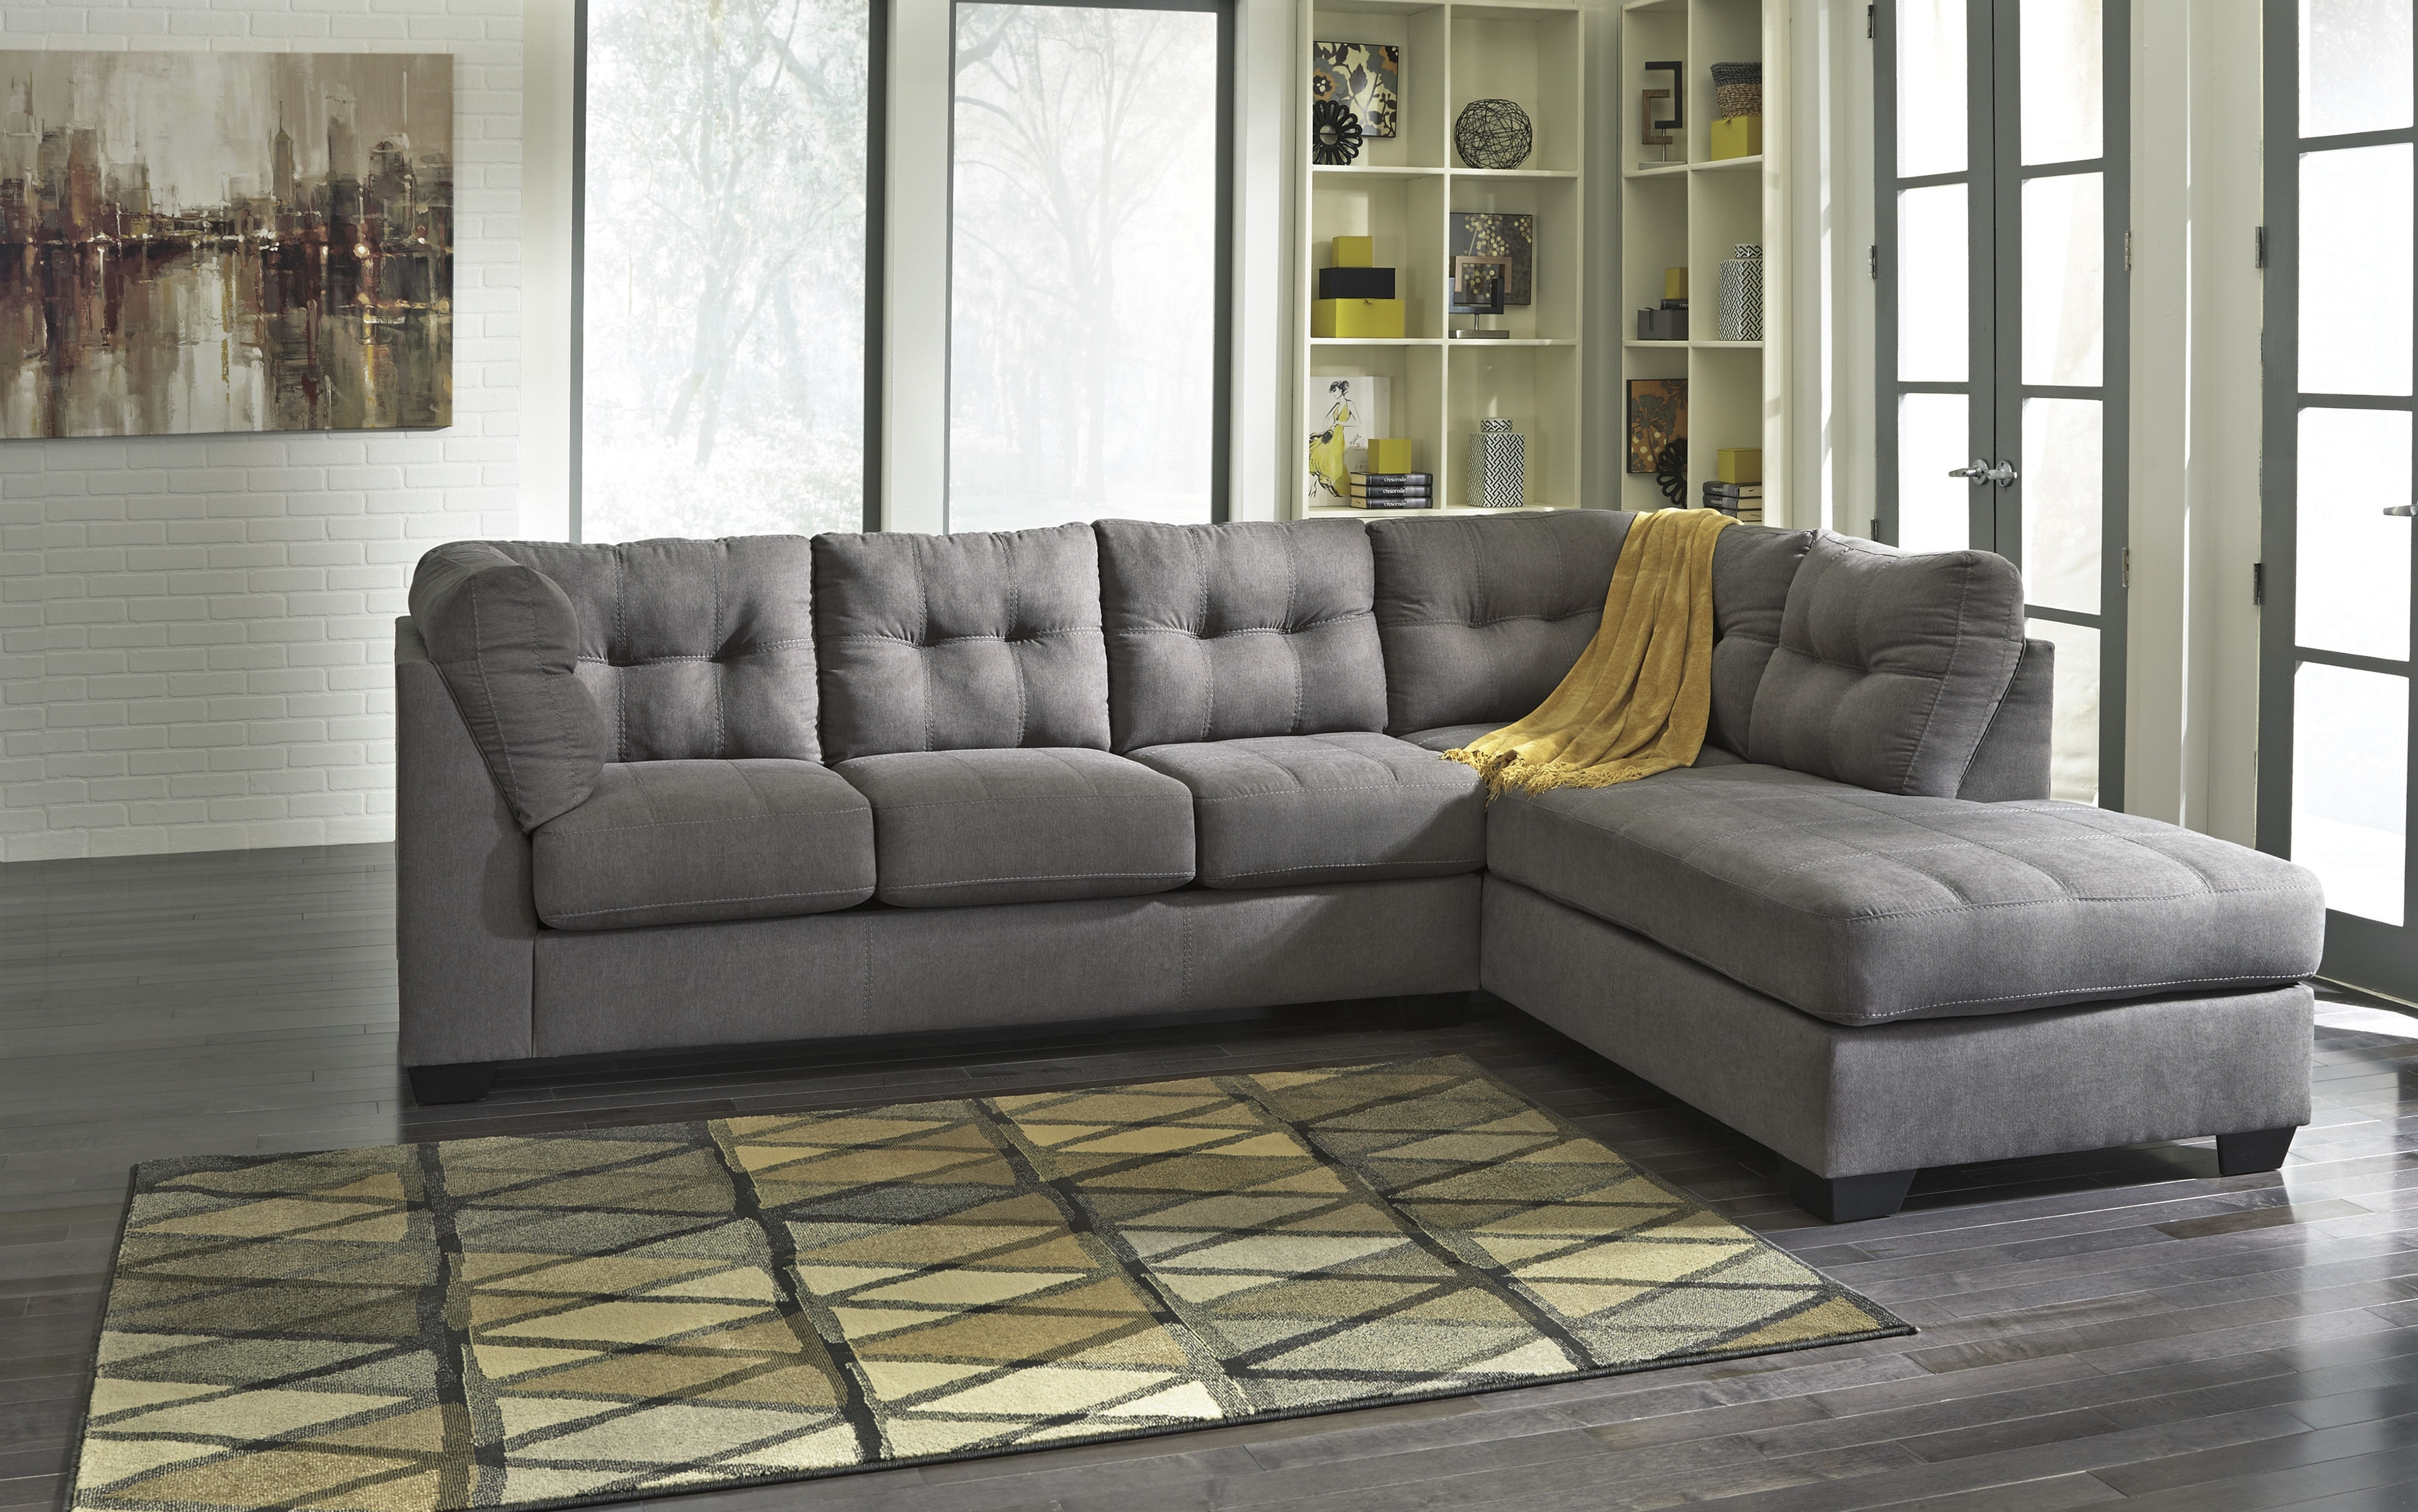 Ashley Furniture Maier Charcoal Raf Chaise Sectional | The Classy Home Within Lucy Dark Grey 2 Piece Sectionals With Raf Chaise (Image 6 of 25)